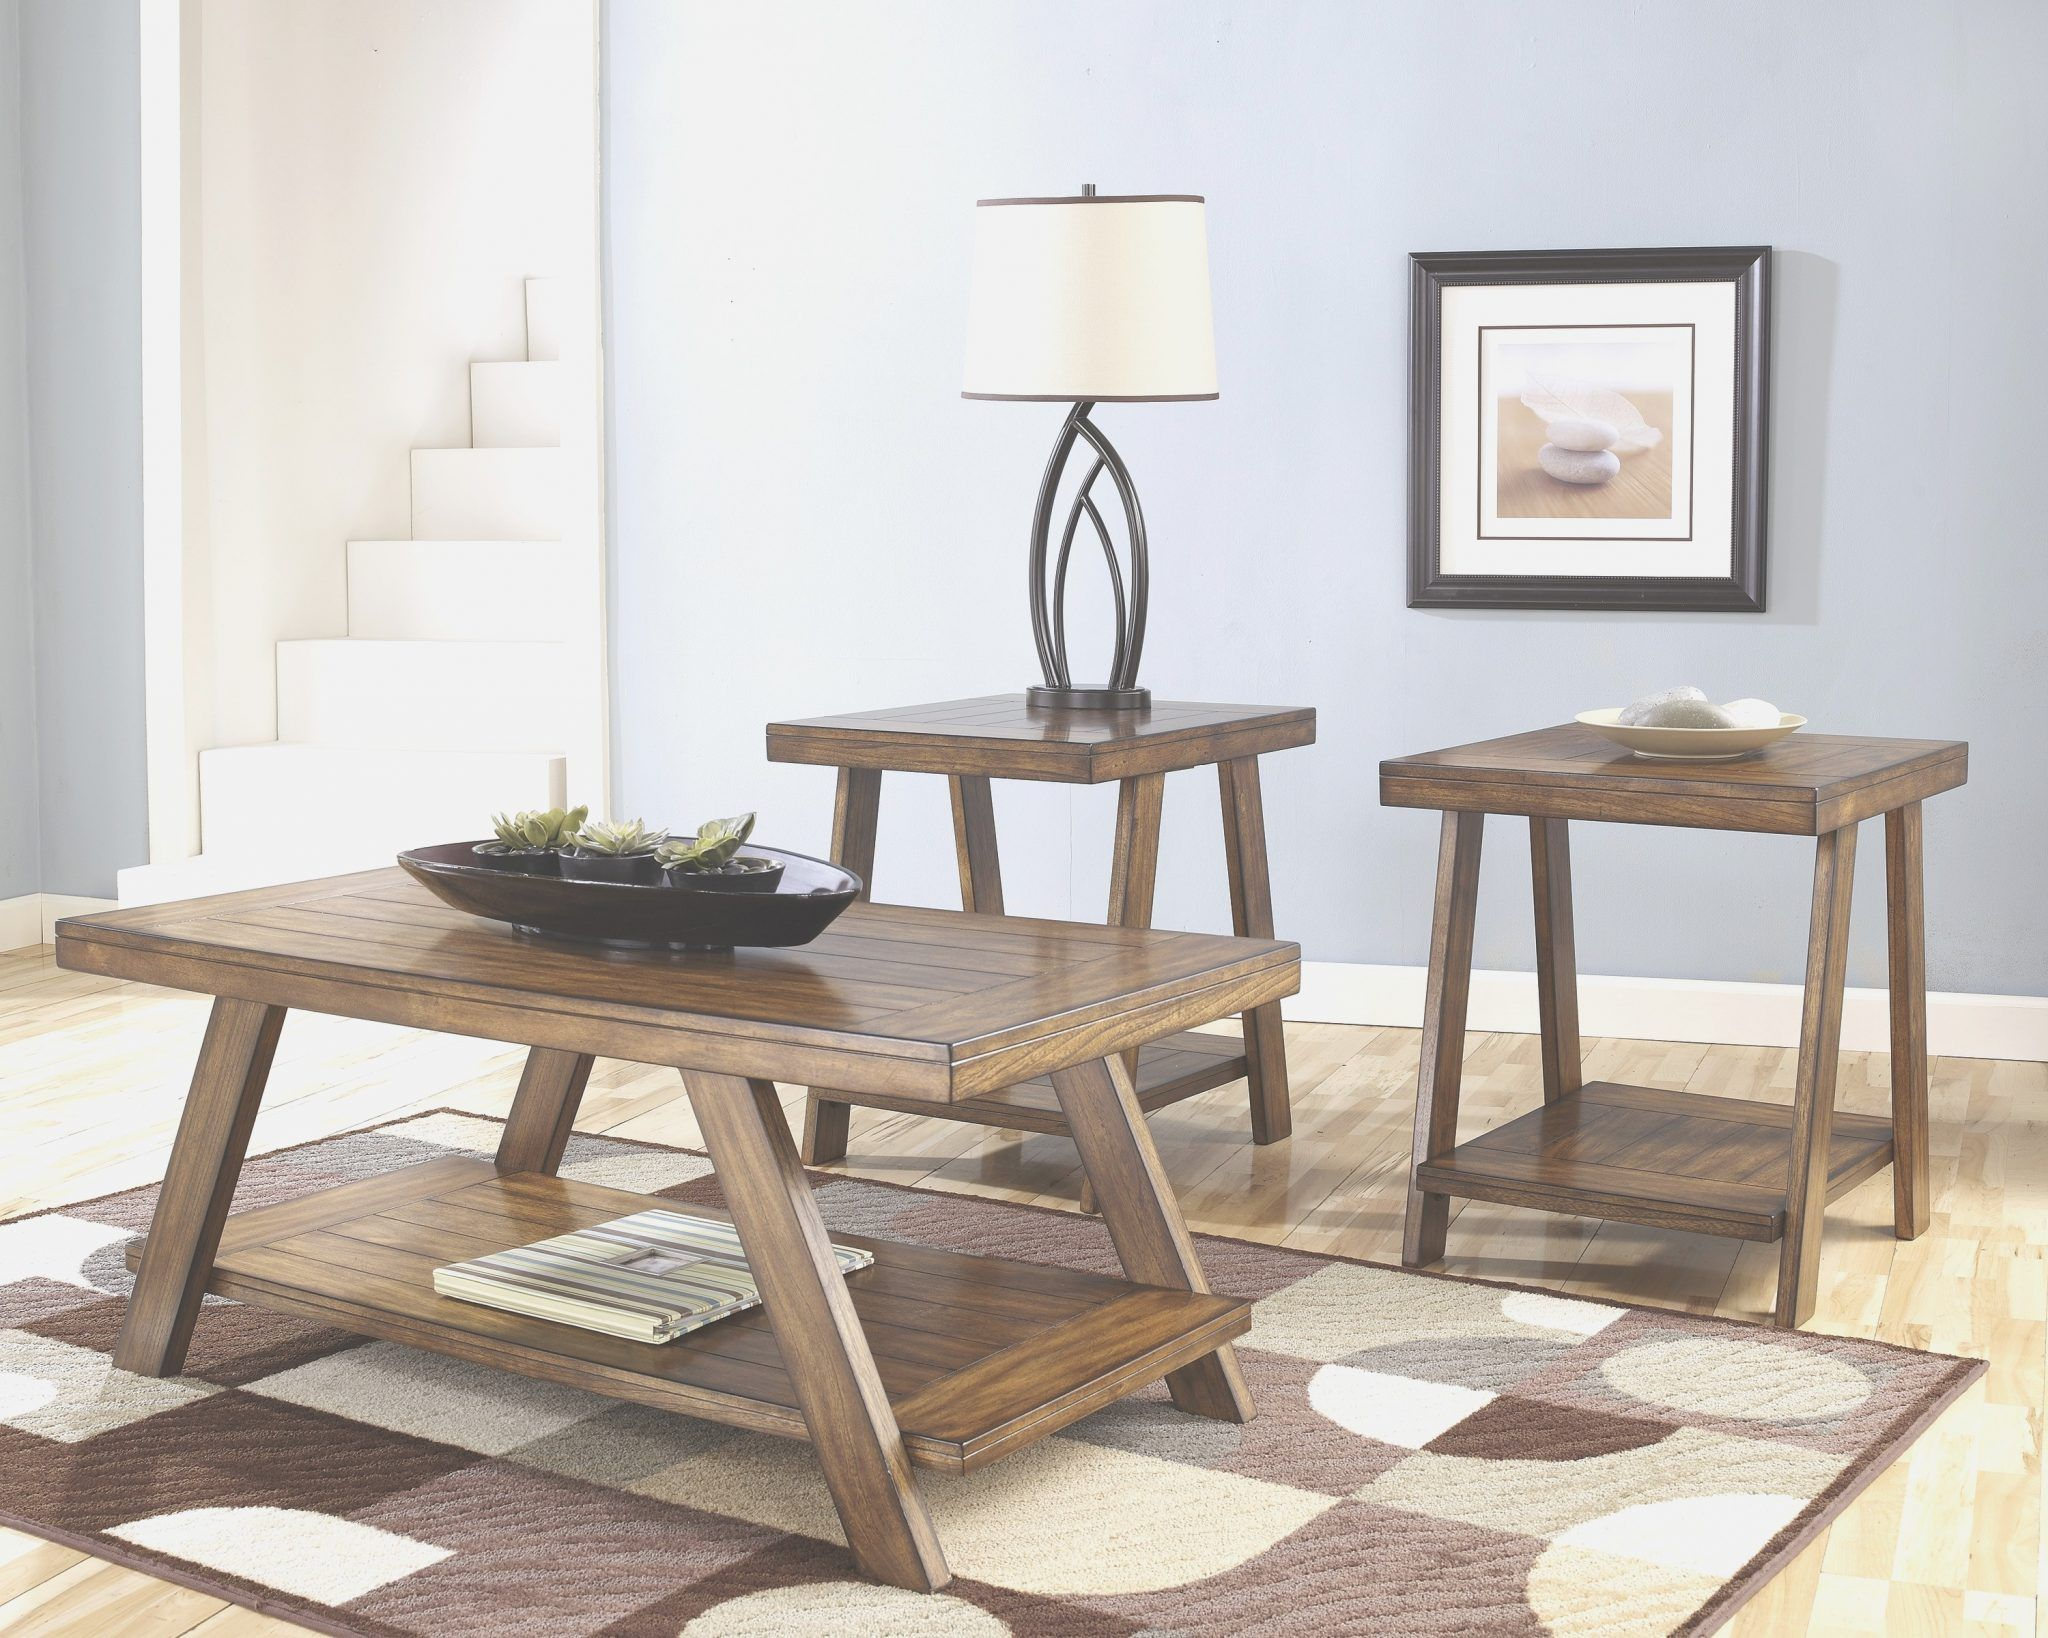 3 Piece Table Set for Living Room - 3 piece living room glass table ...